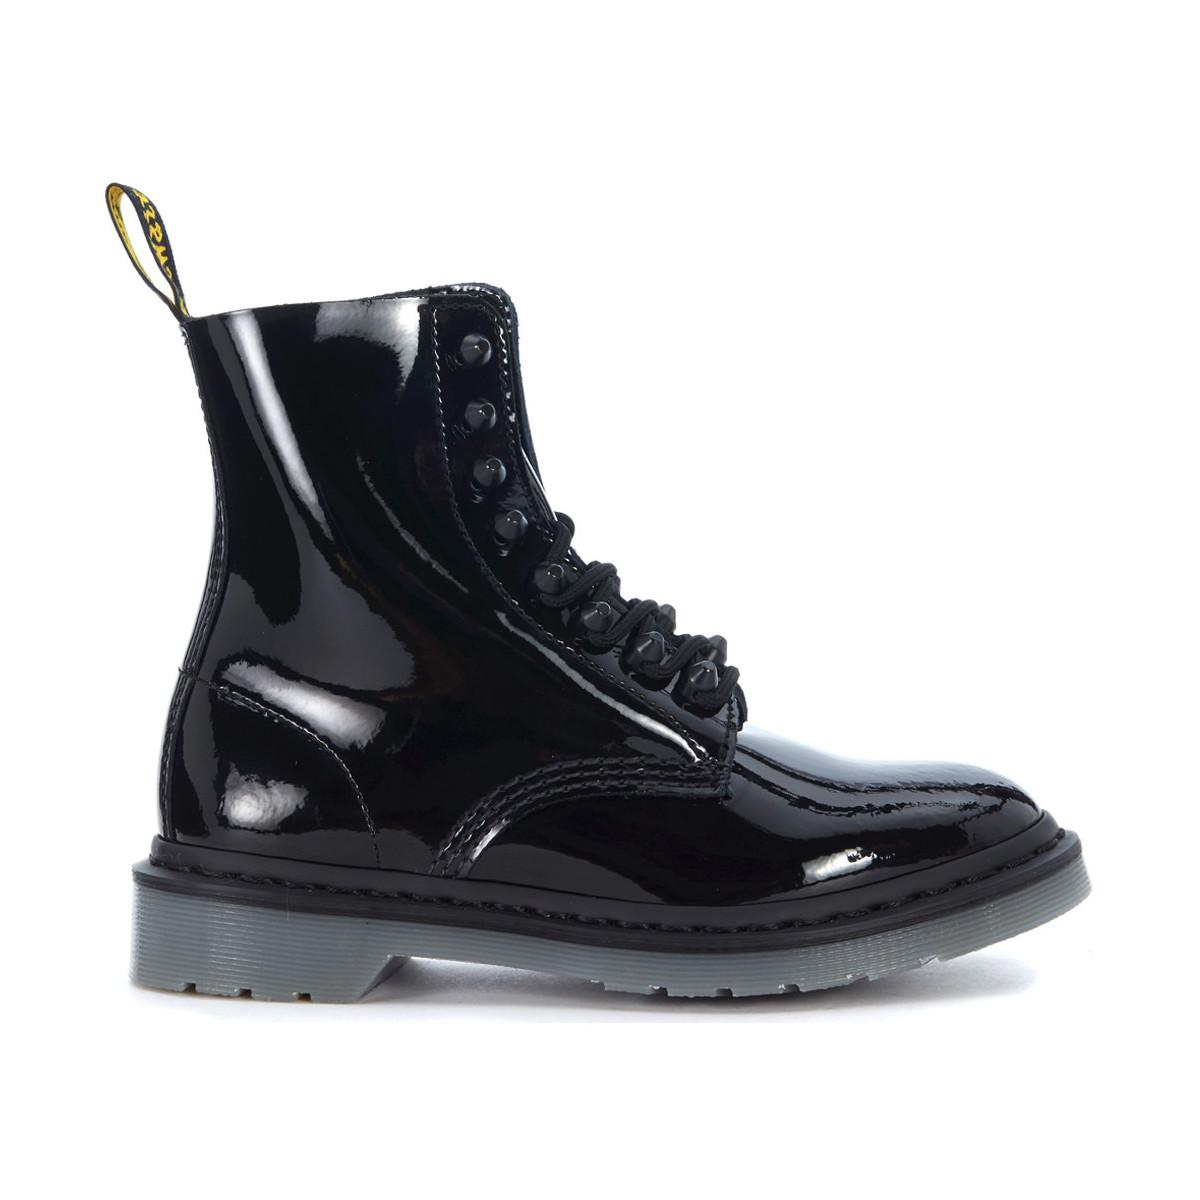 Countdown Package Sale Online Wide Range Of Online Dr. Martens Anfibio patent leather ankle boots with 8 eyelets and stu women's Low Ankle Boots in 02mstpe